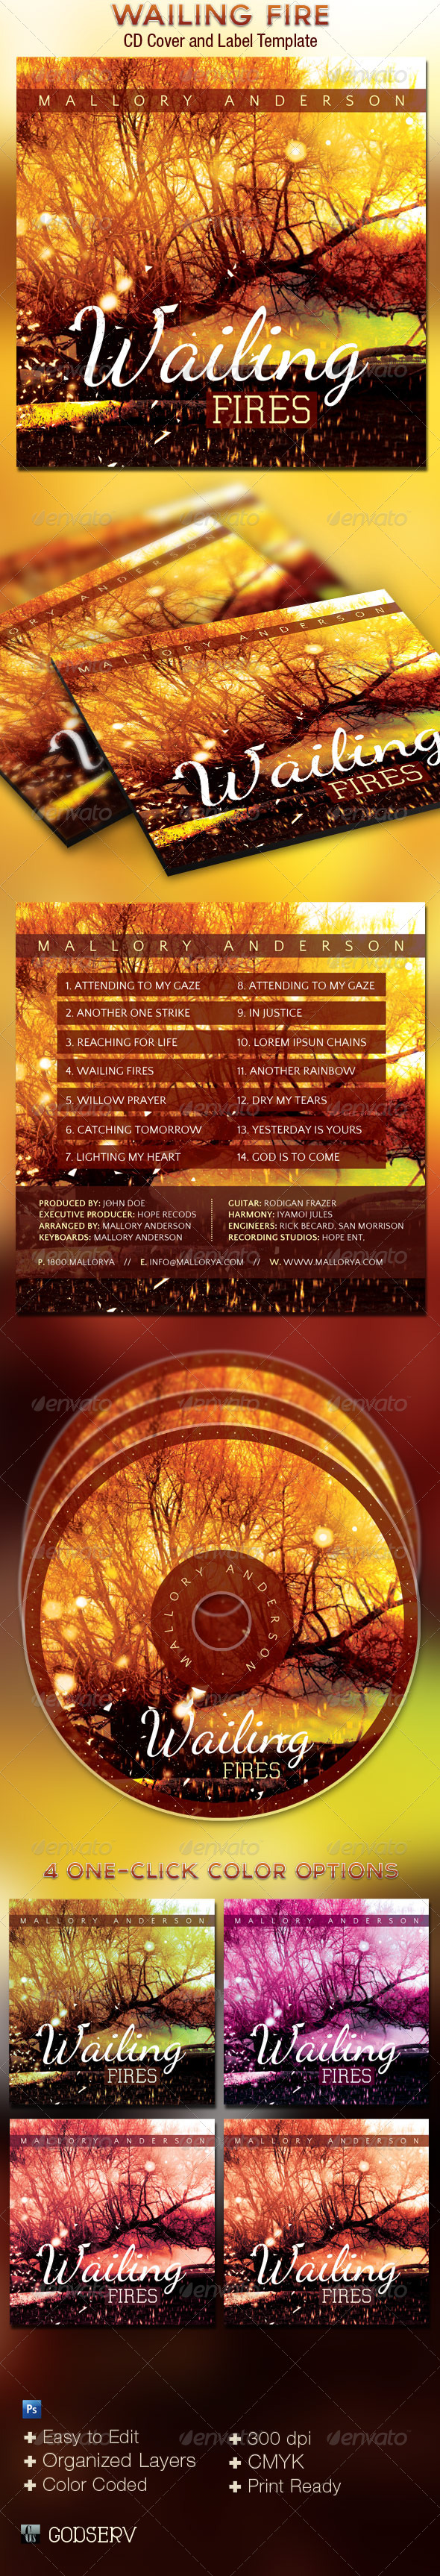 Wailing Fire CD Cover Art Template - CD & DVD Artwork Print Templates